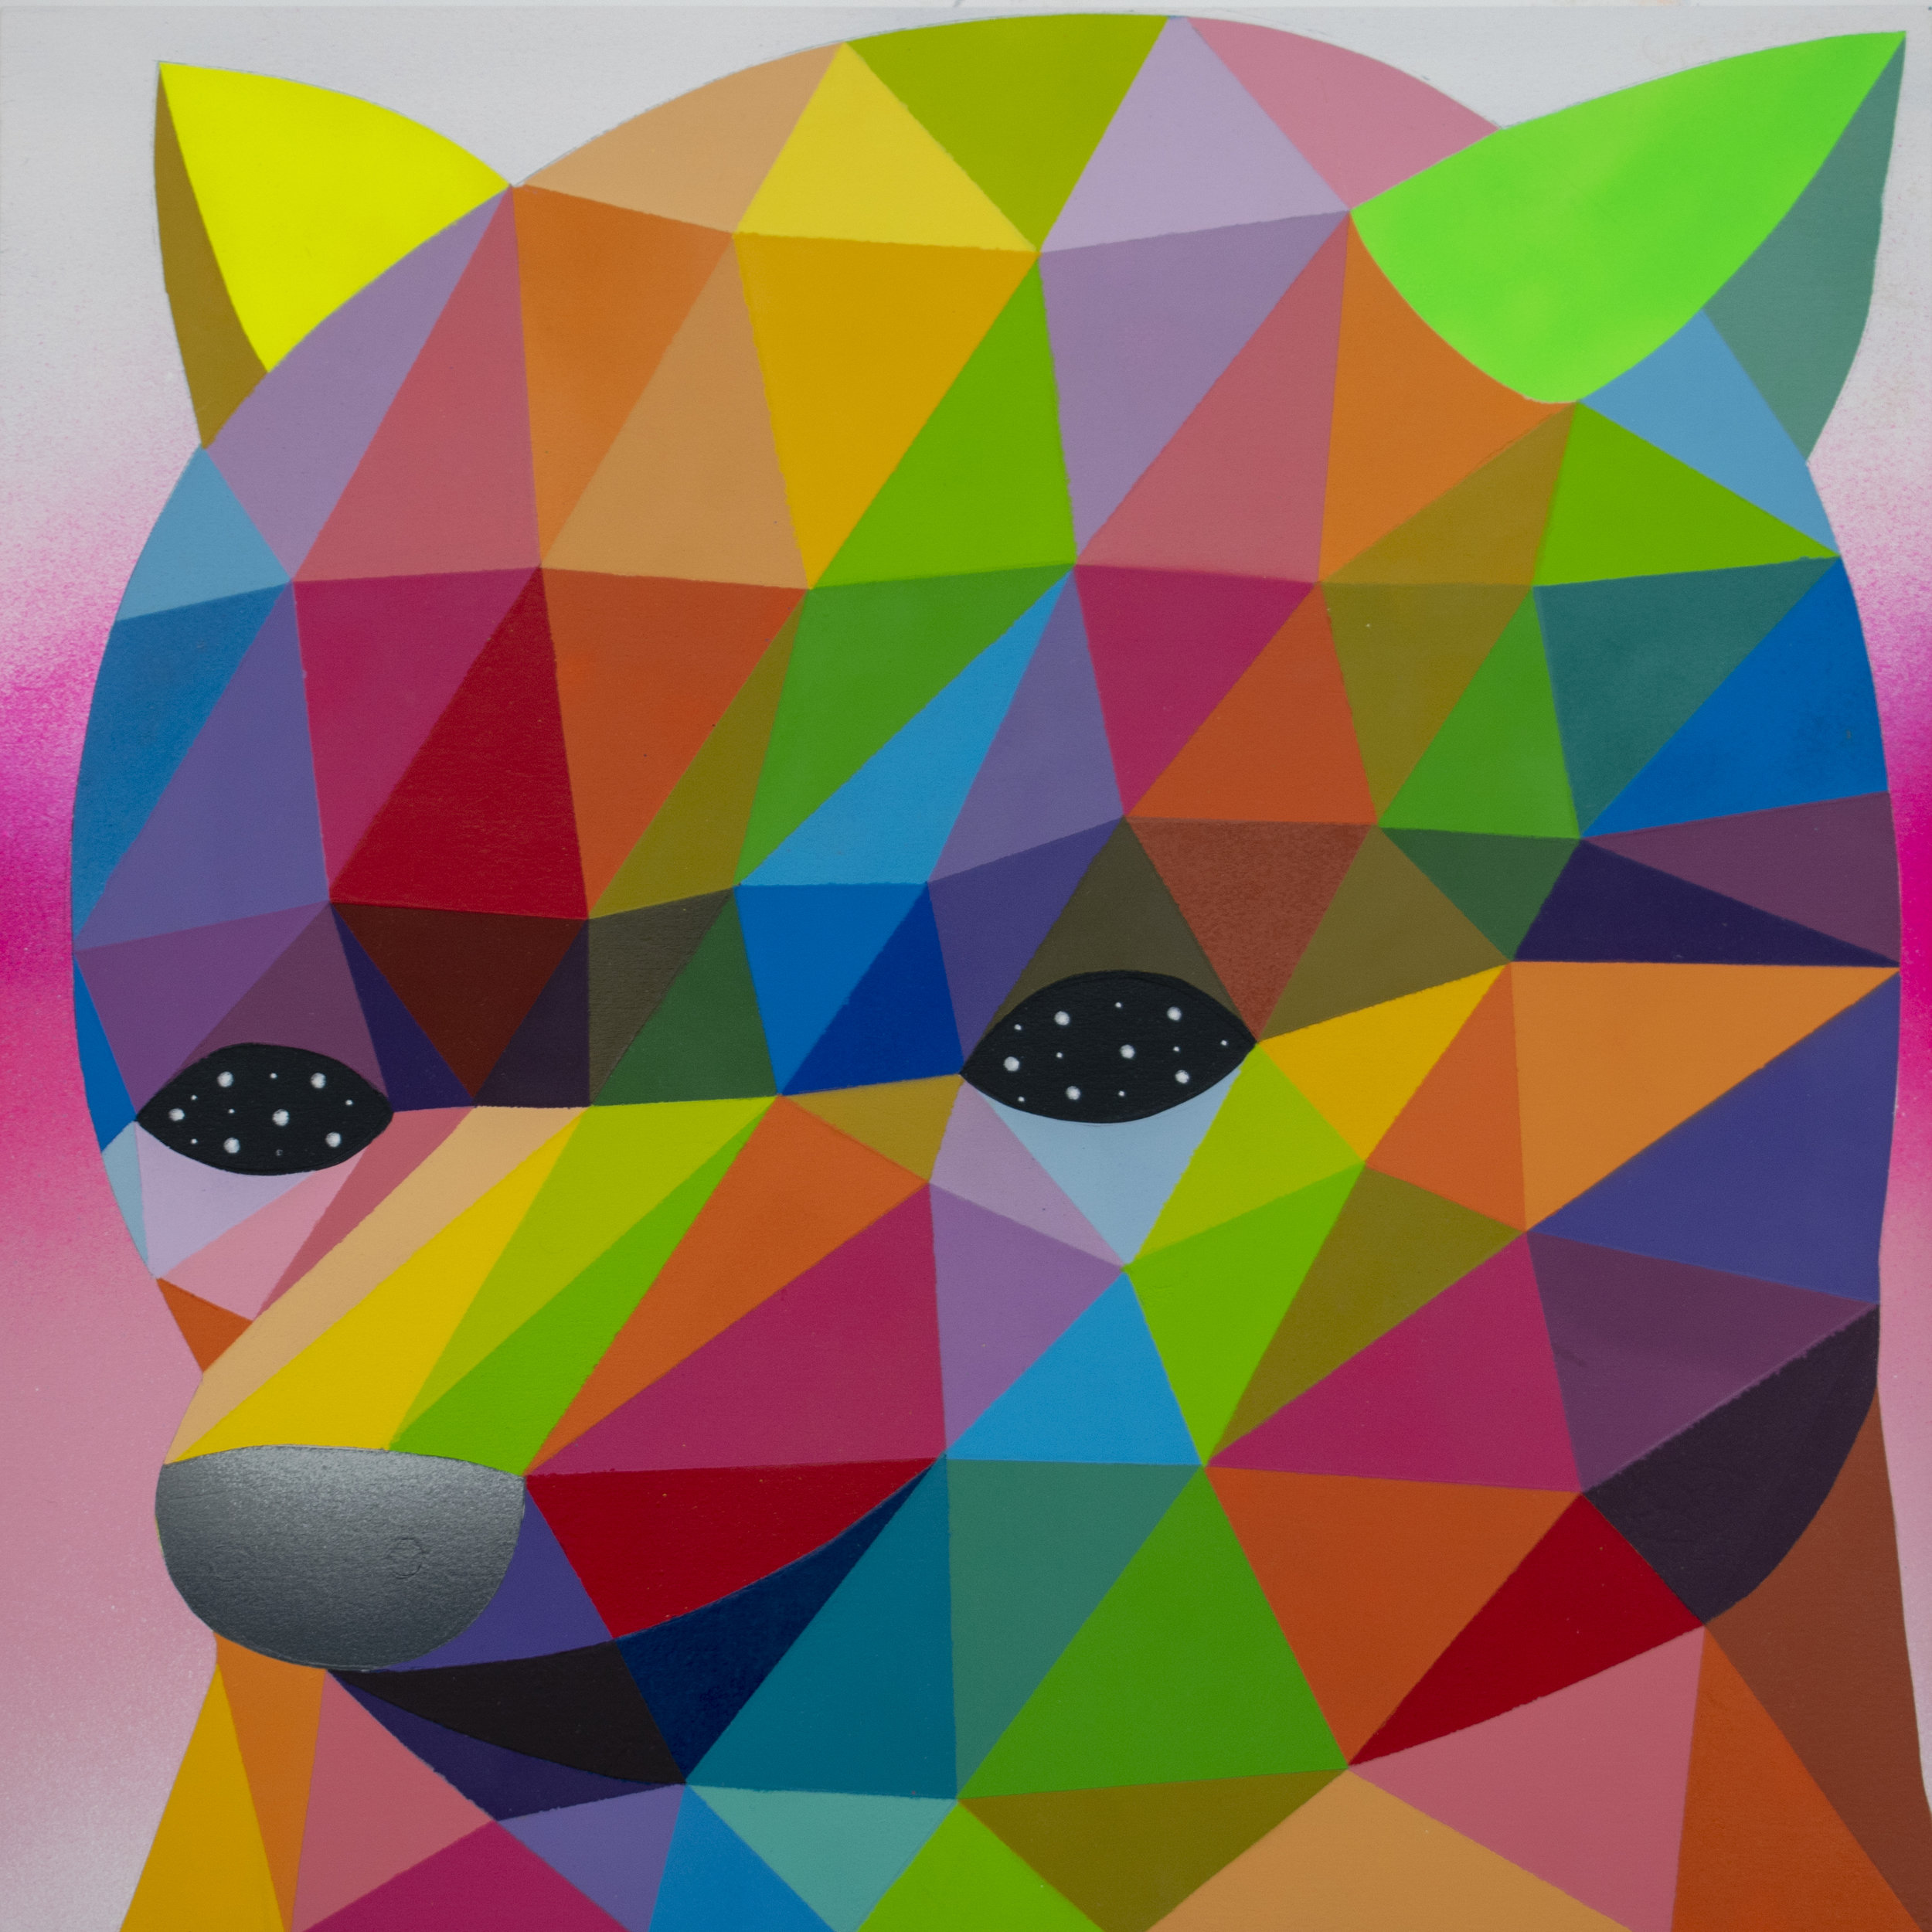 _Pig bear_ 2018 Synthetic enamel on wood 40x40cm.jpg